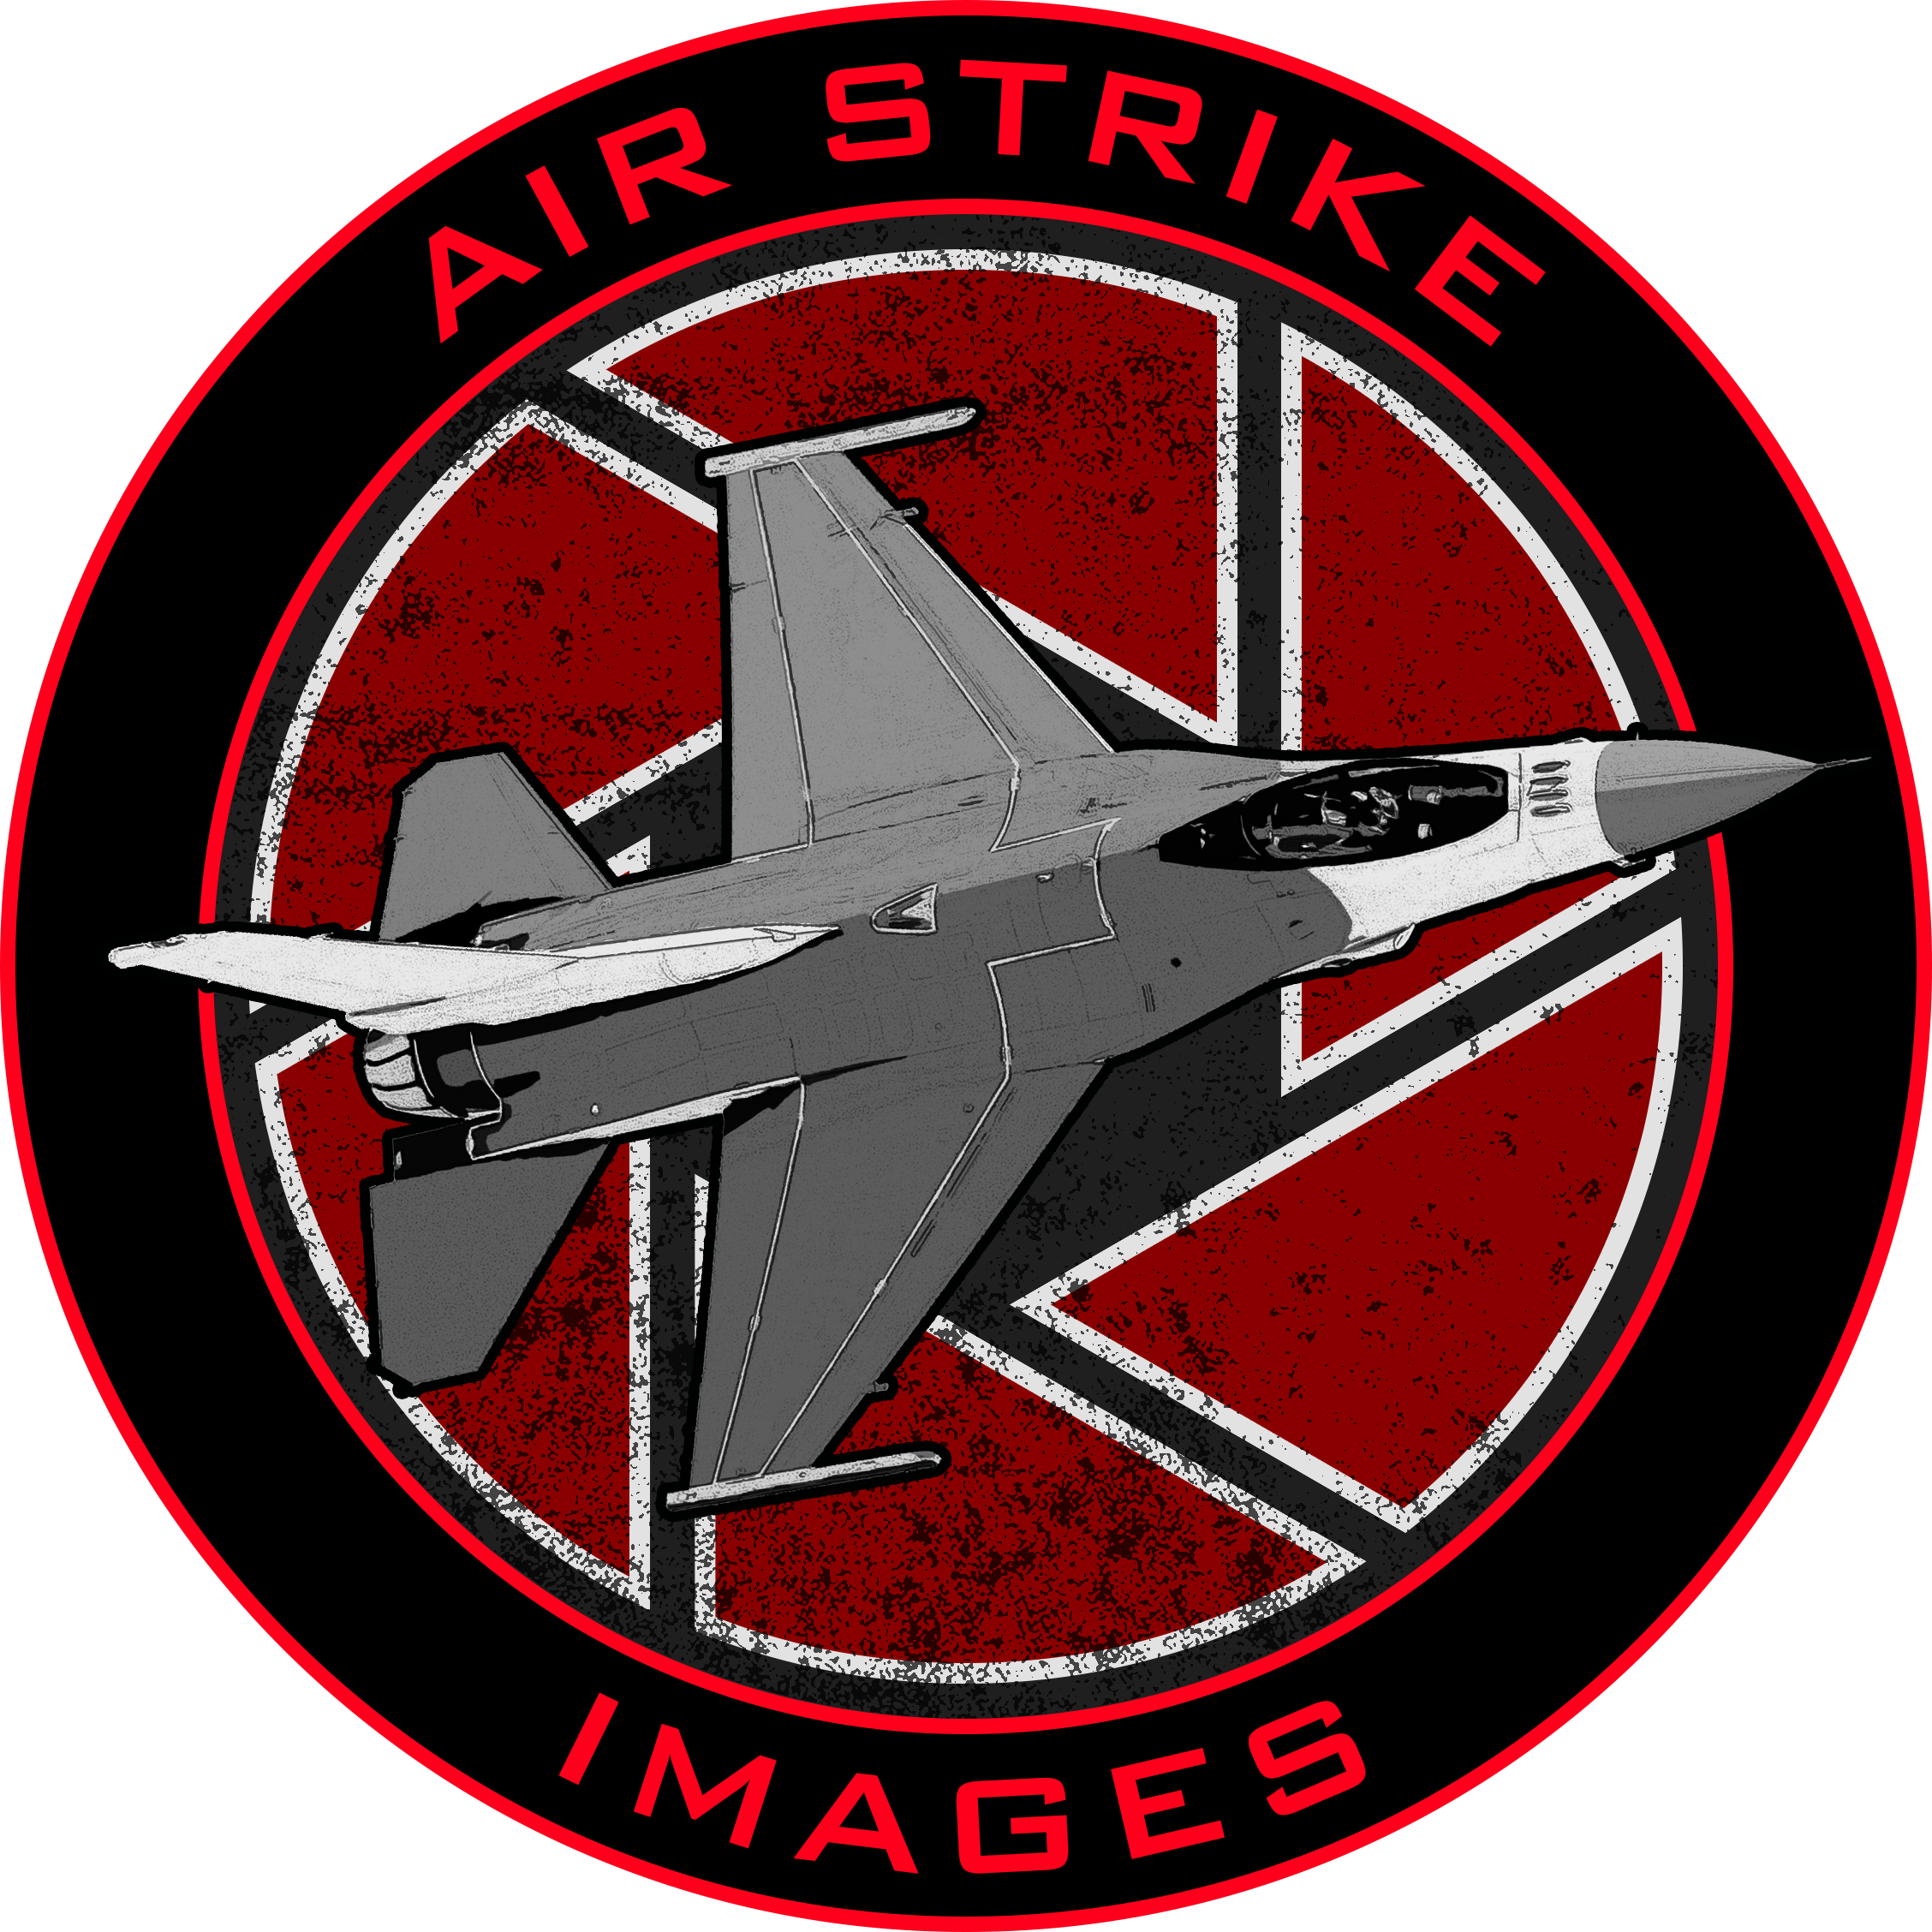 Air Strike Images - Aviation Photography by Geoffrey Arnwine